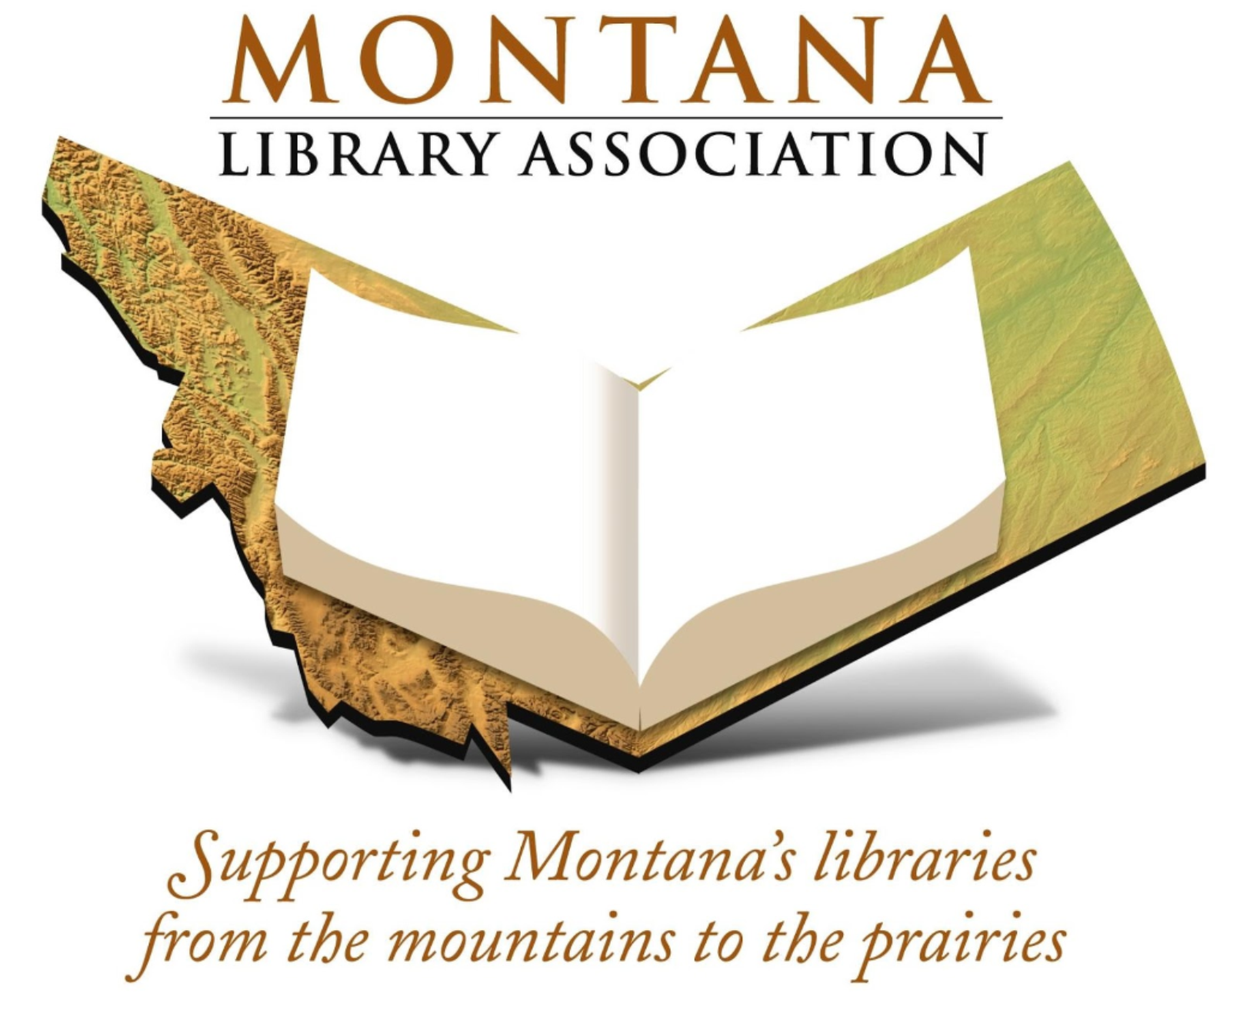 Montana Library Association logo and mission statement